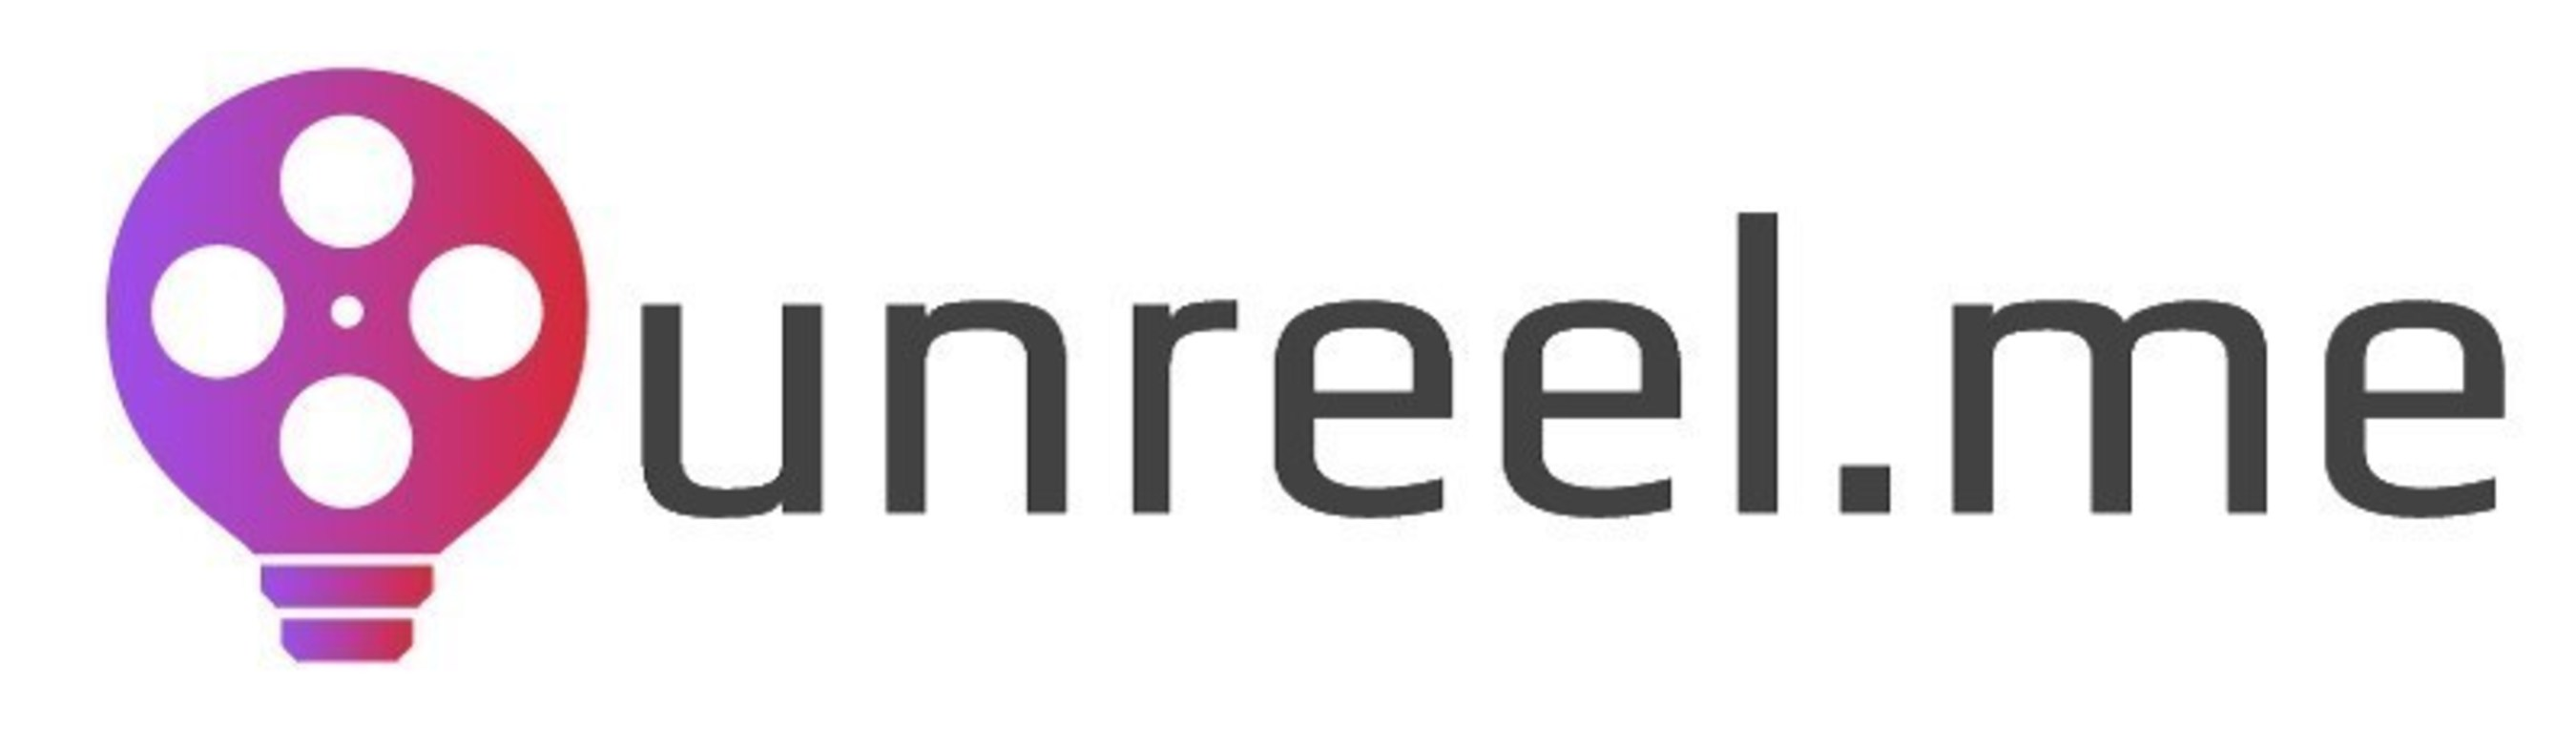 Unreel.me helps video creators and publishers instantly launch their own video streaming services & apps for free.